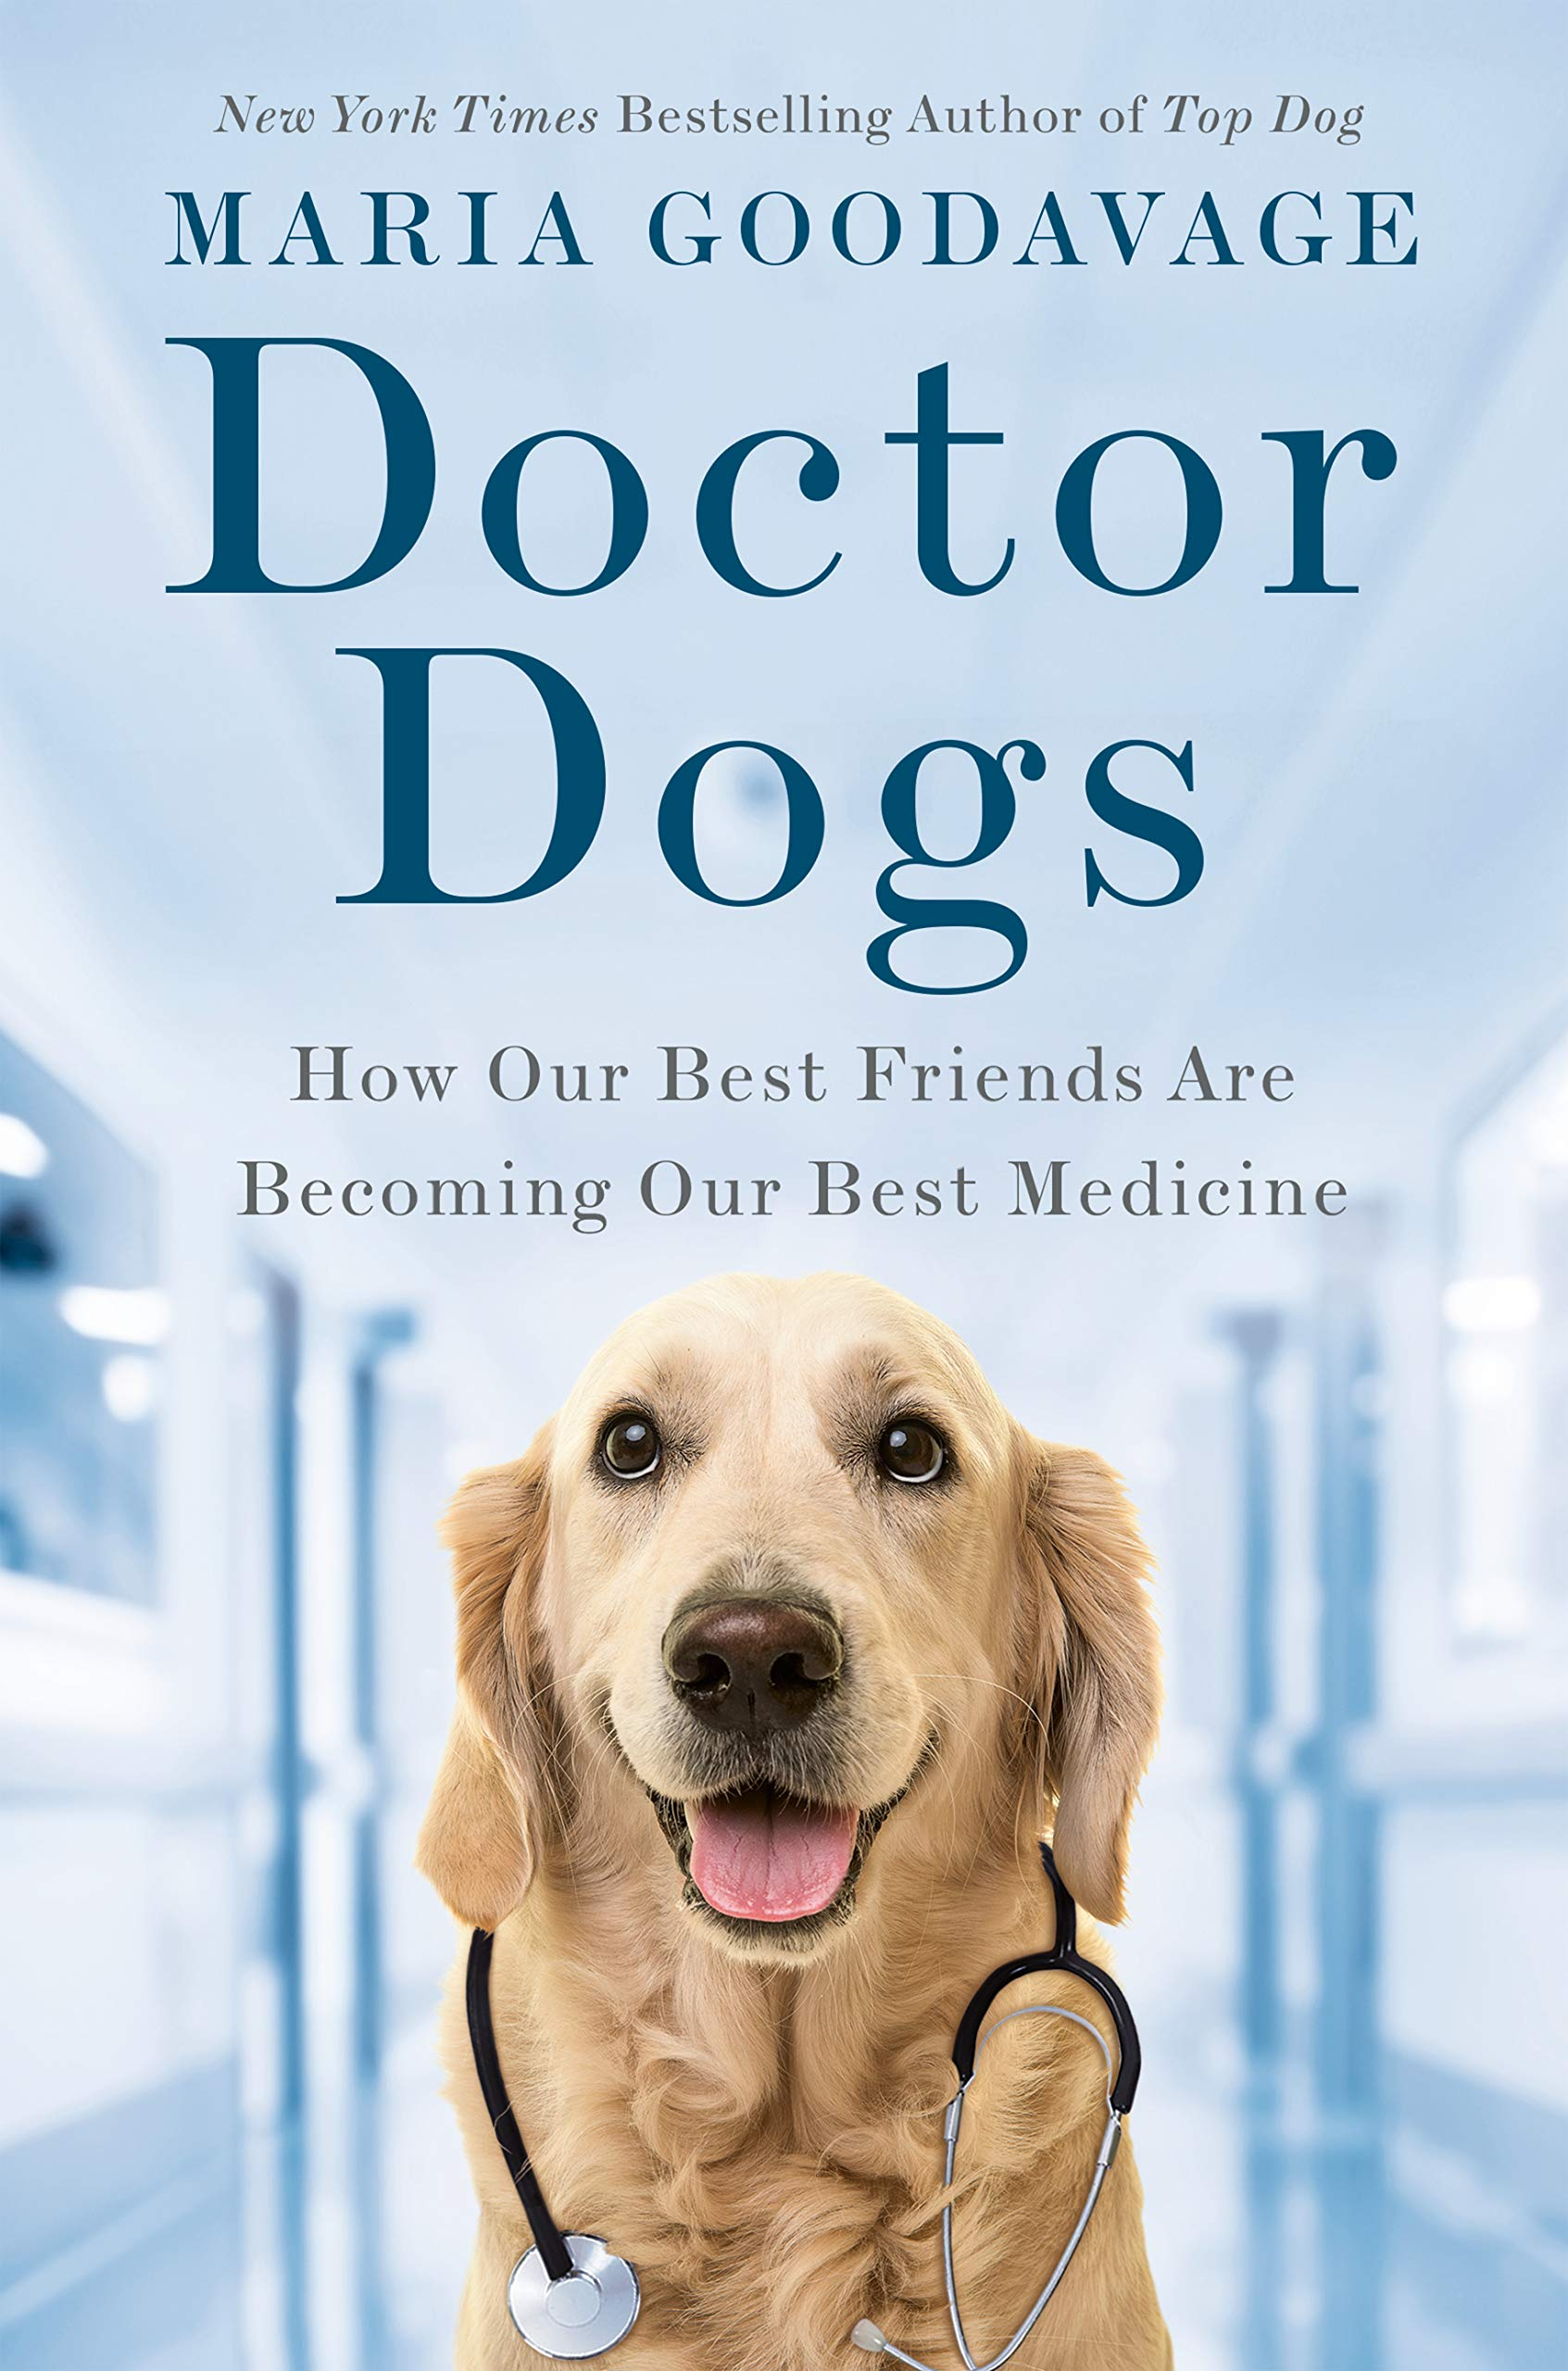 Doctor Dogs: How Our Best Friends Are Becoming Our Best